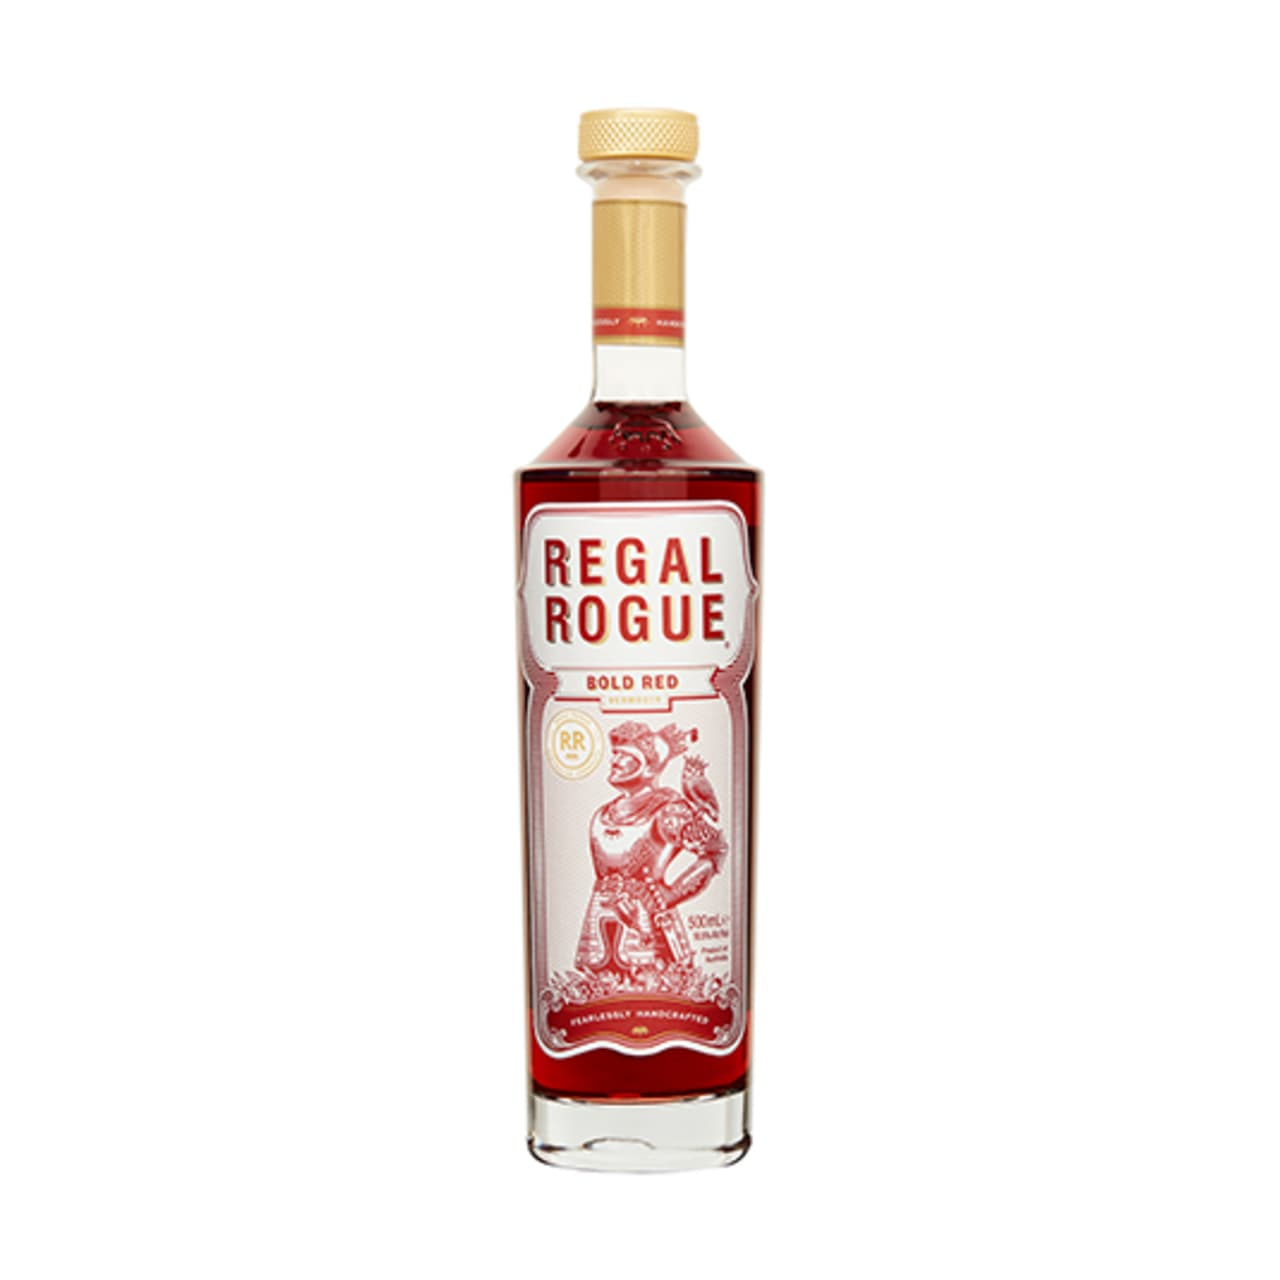 Product Image - Regal Rogue Bold Red Vermouth